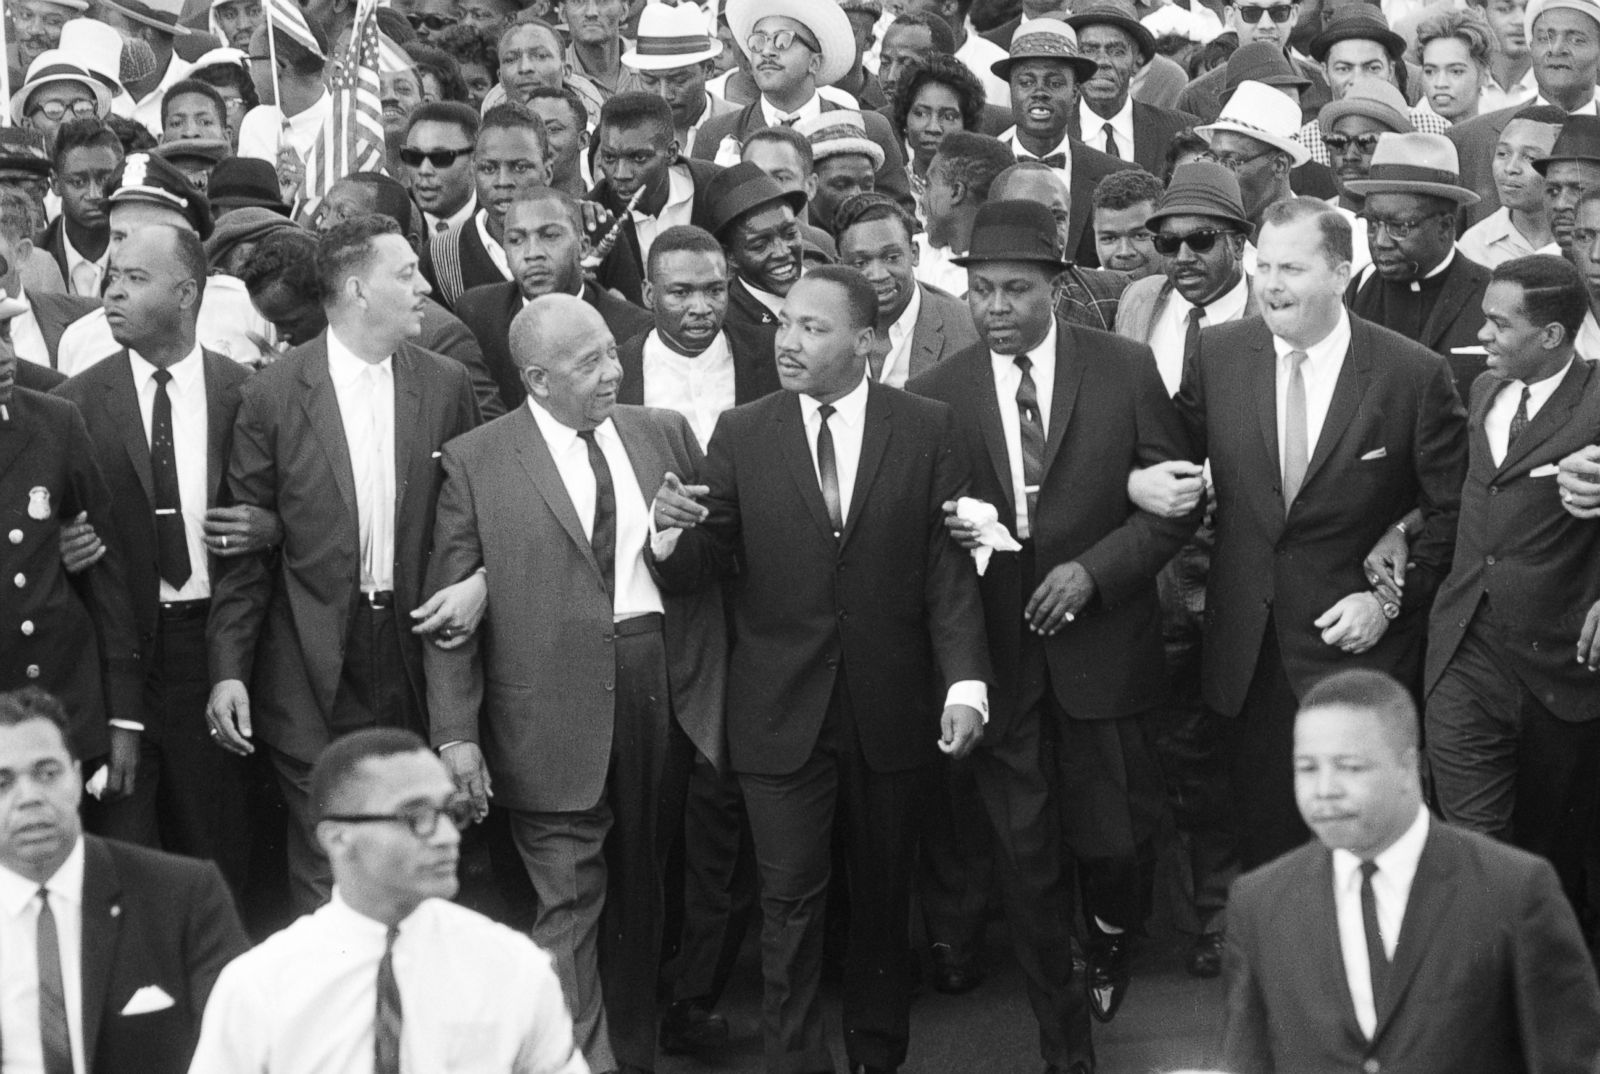 Martin Luther King Jr A Life In Pictures Photos Image 12 Abc News